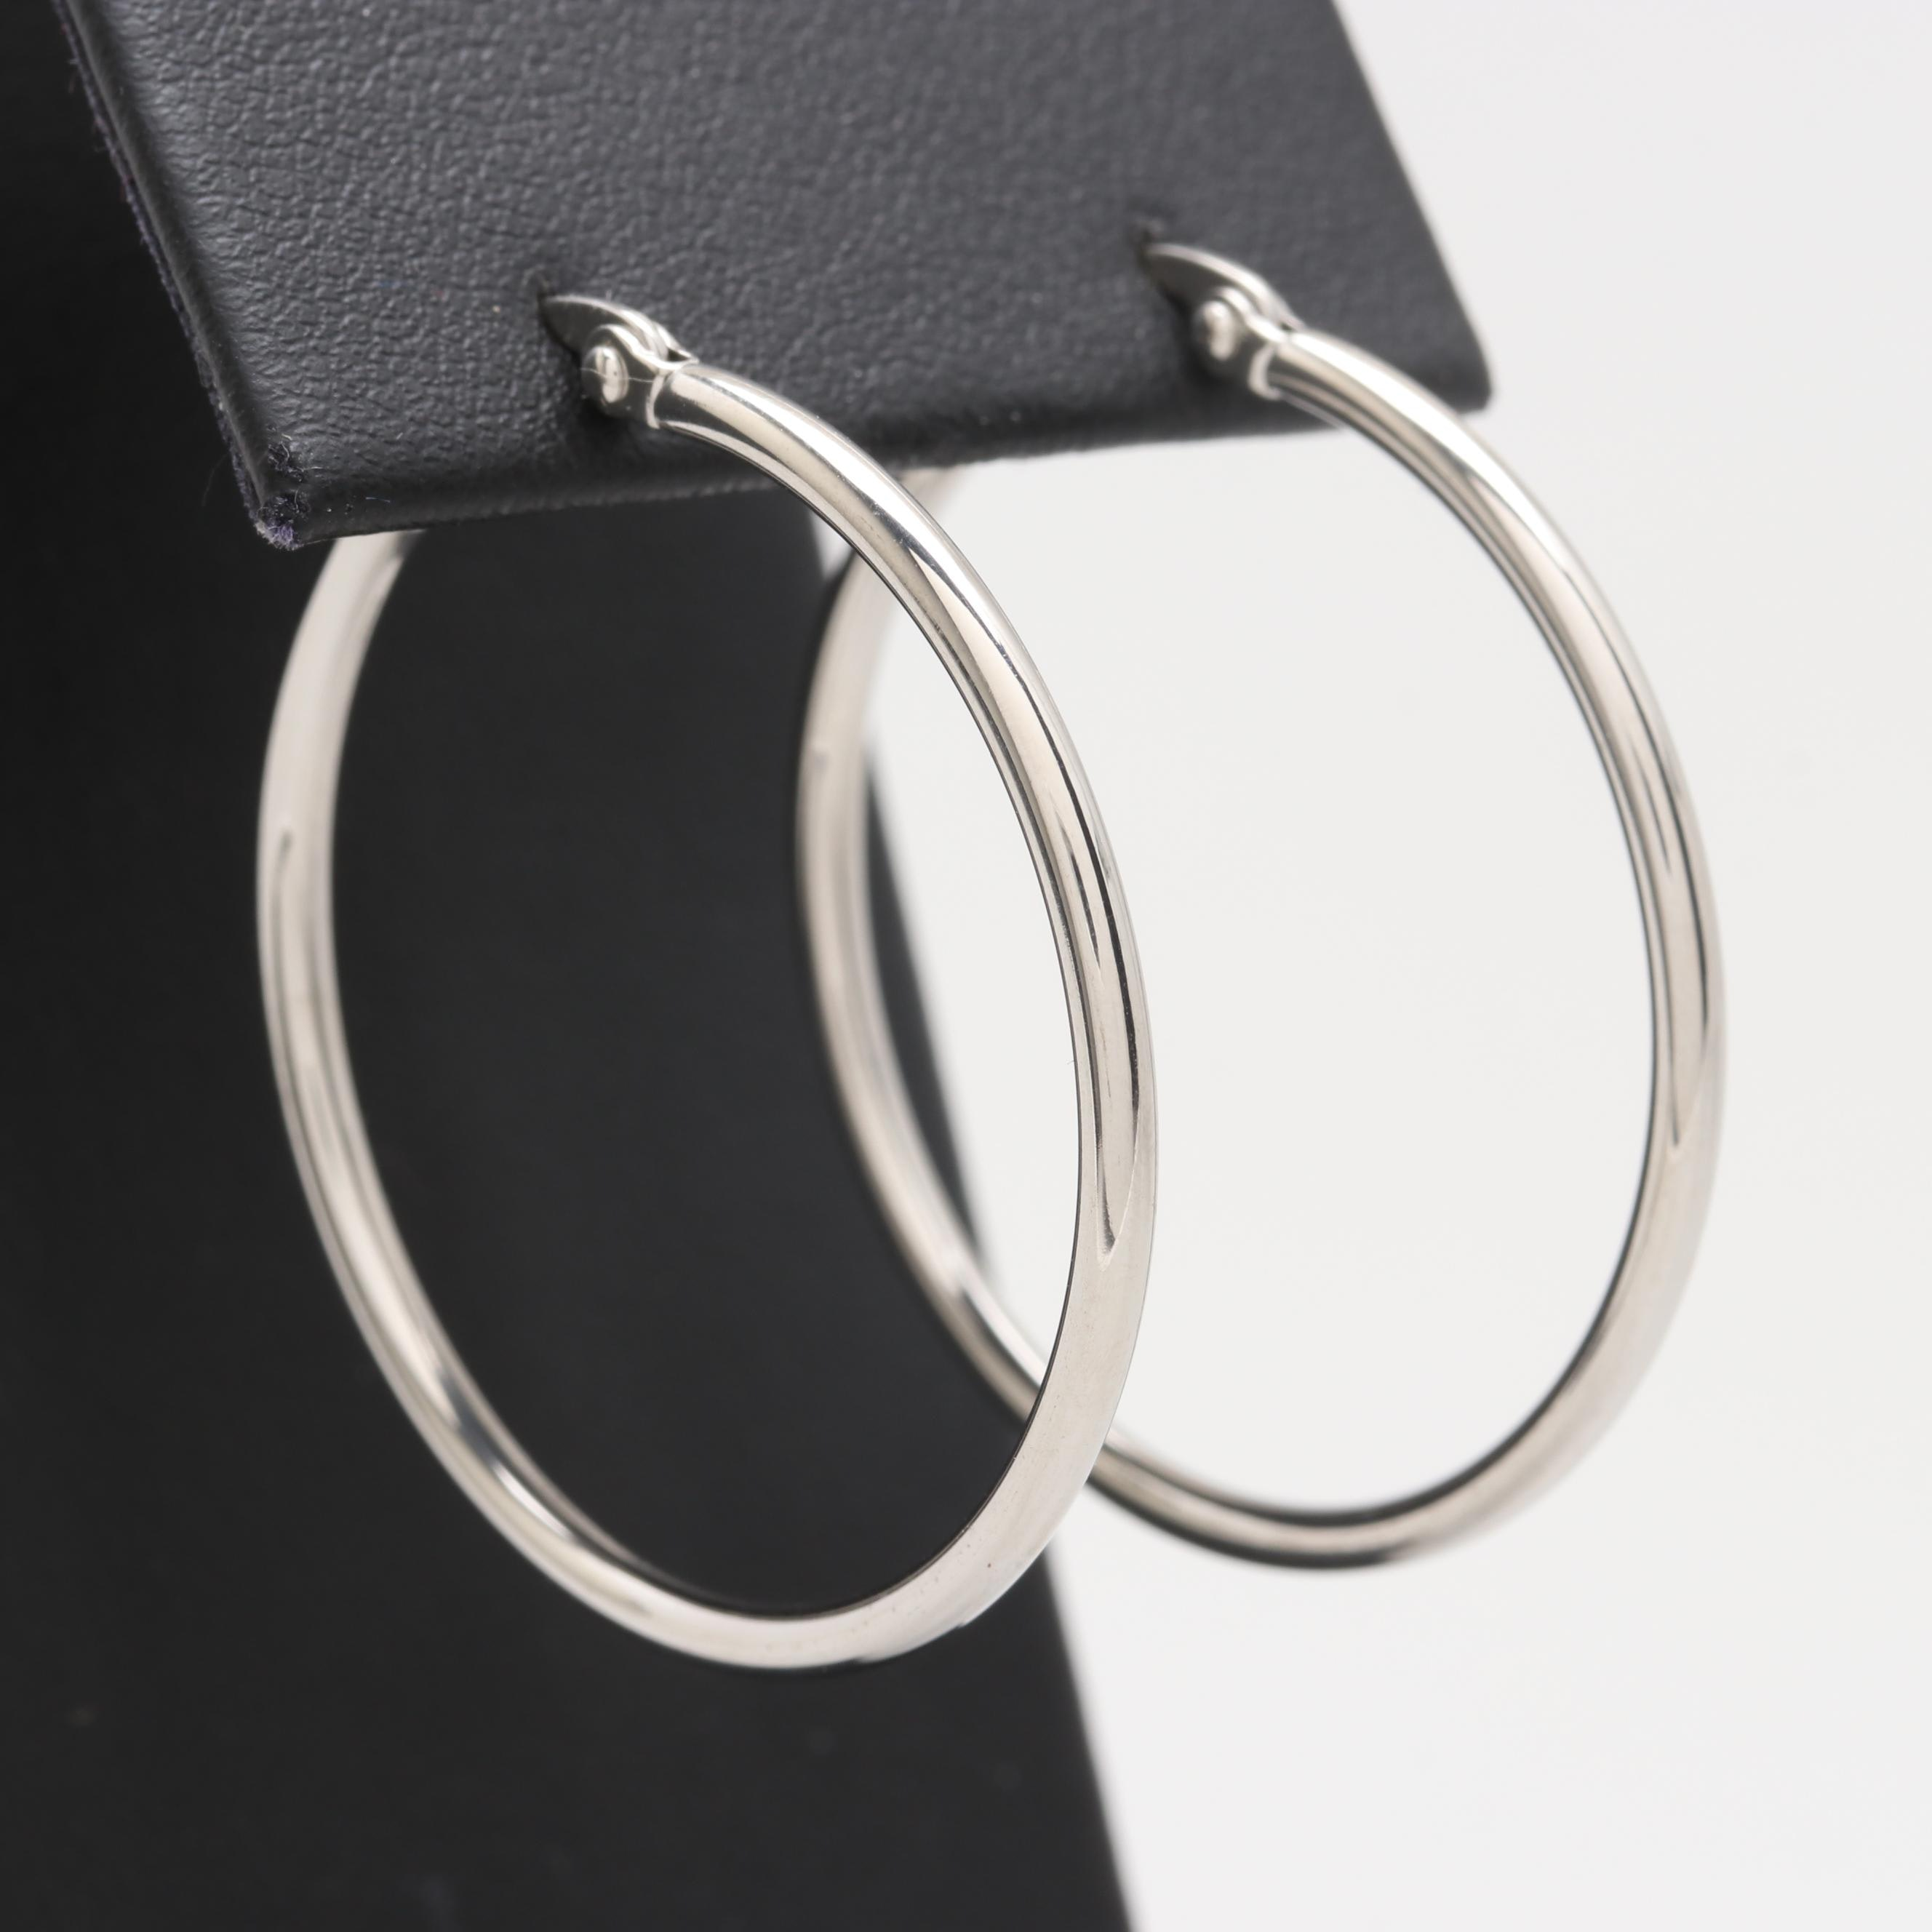 Stainless Steel Costume Hoops